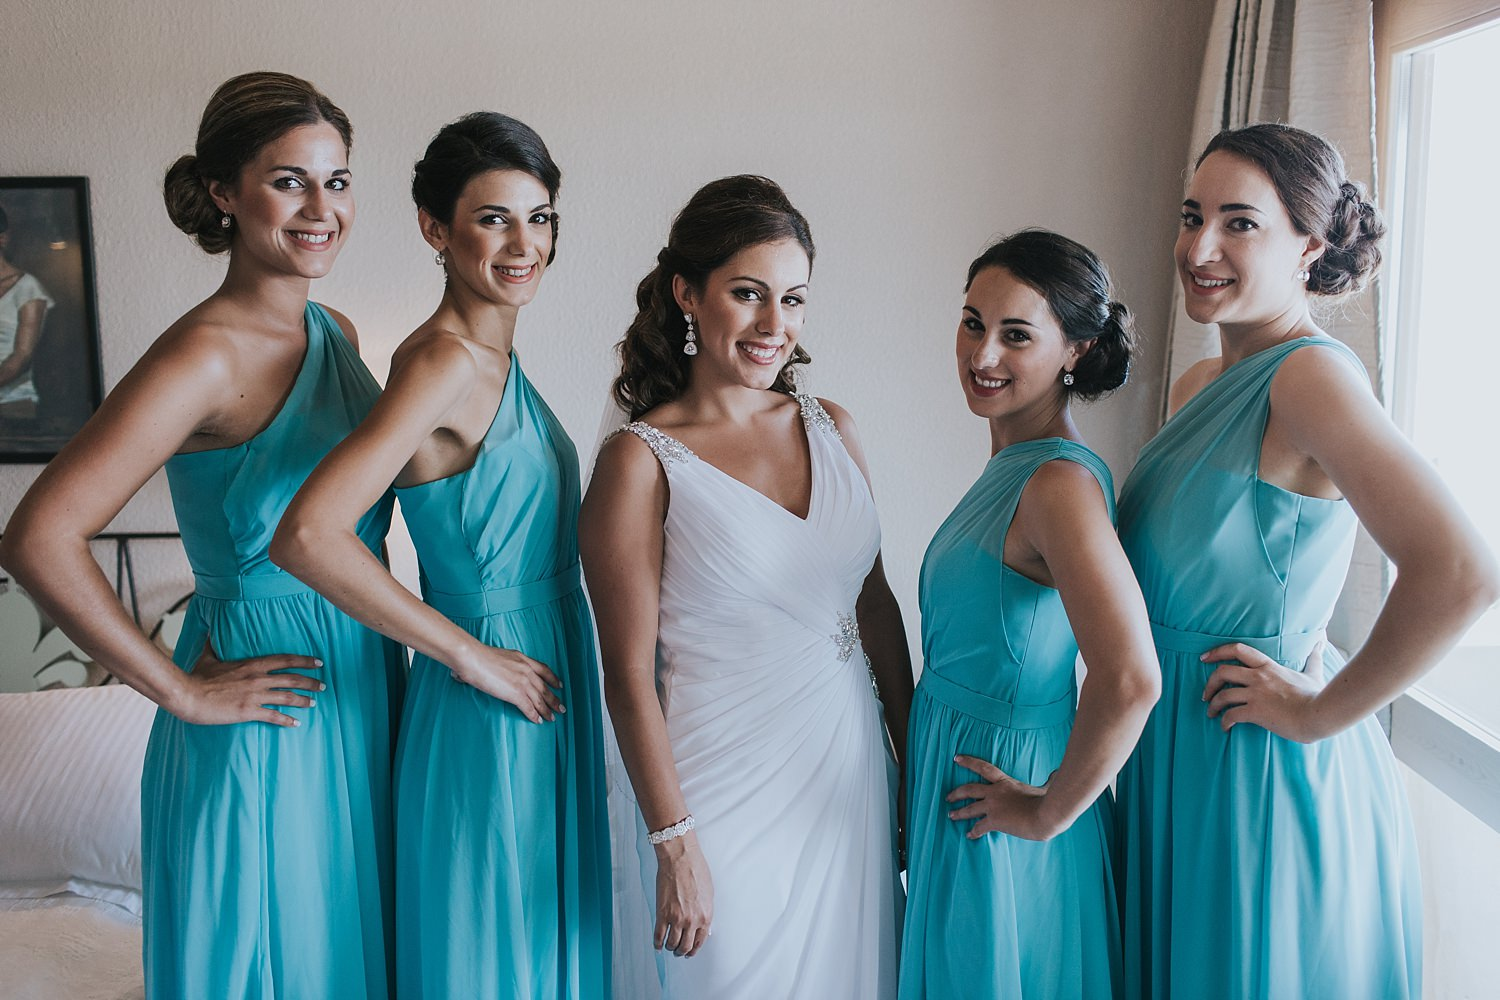 bridesmaids before the wedding ceremony